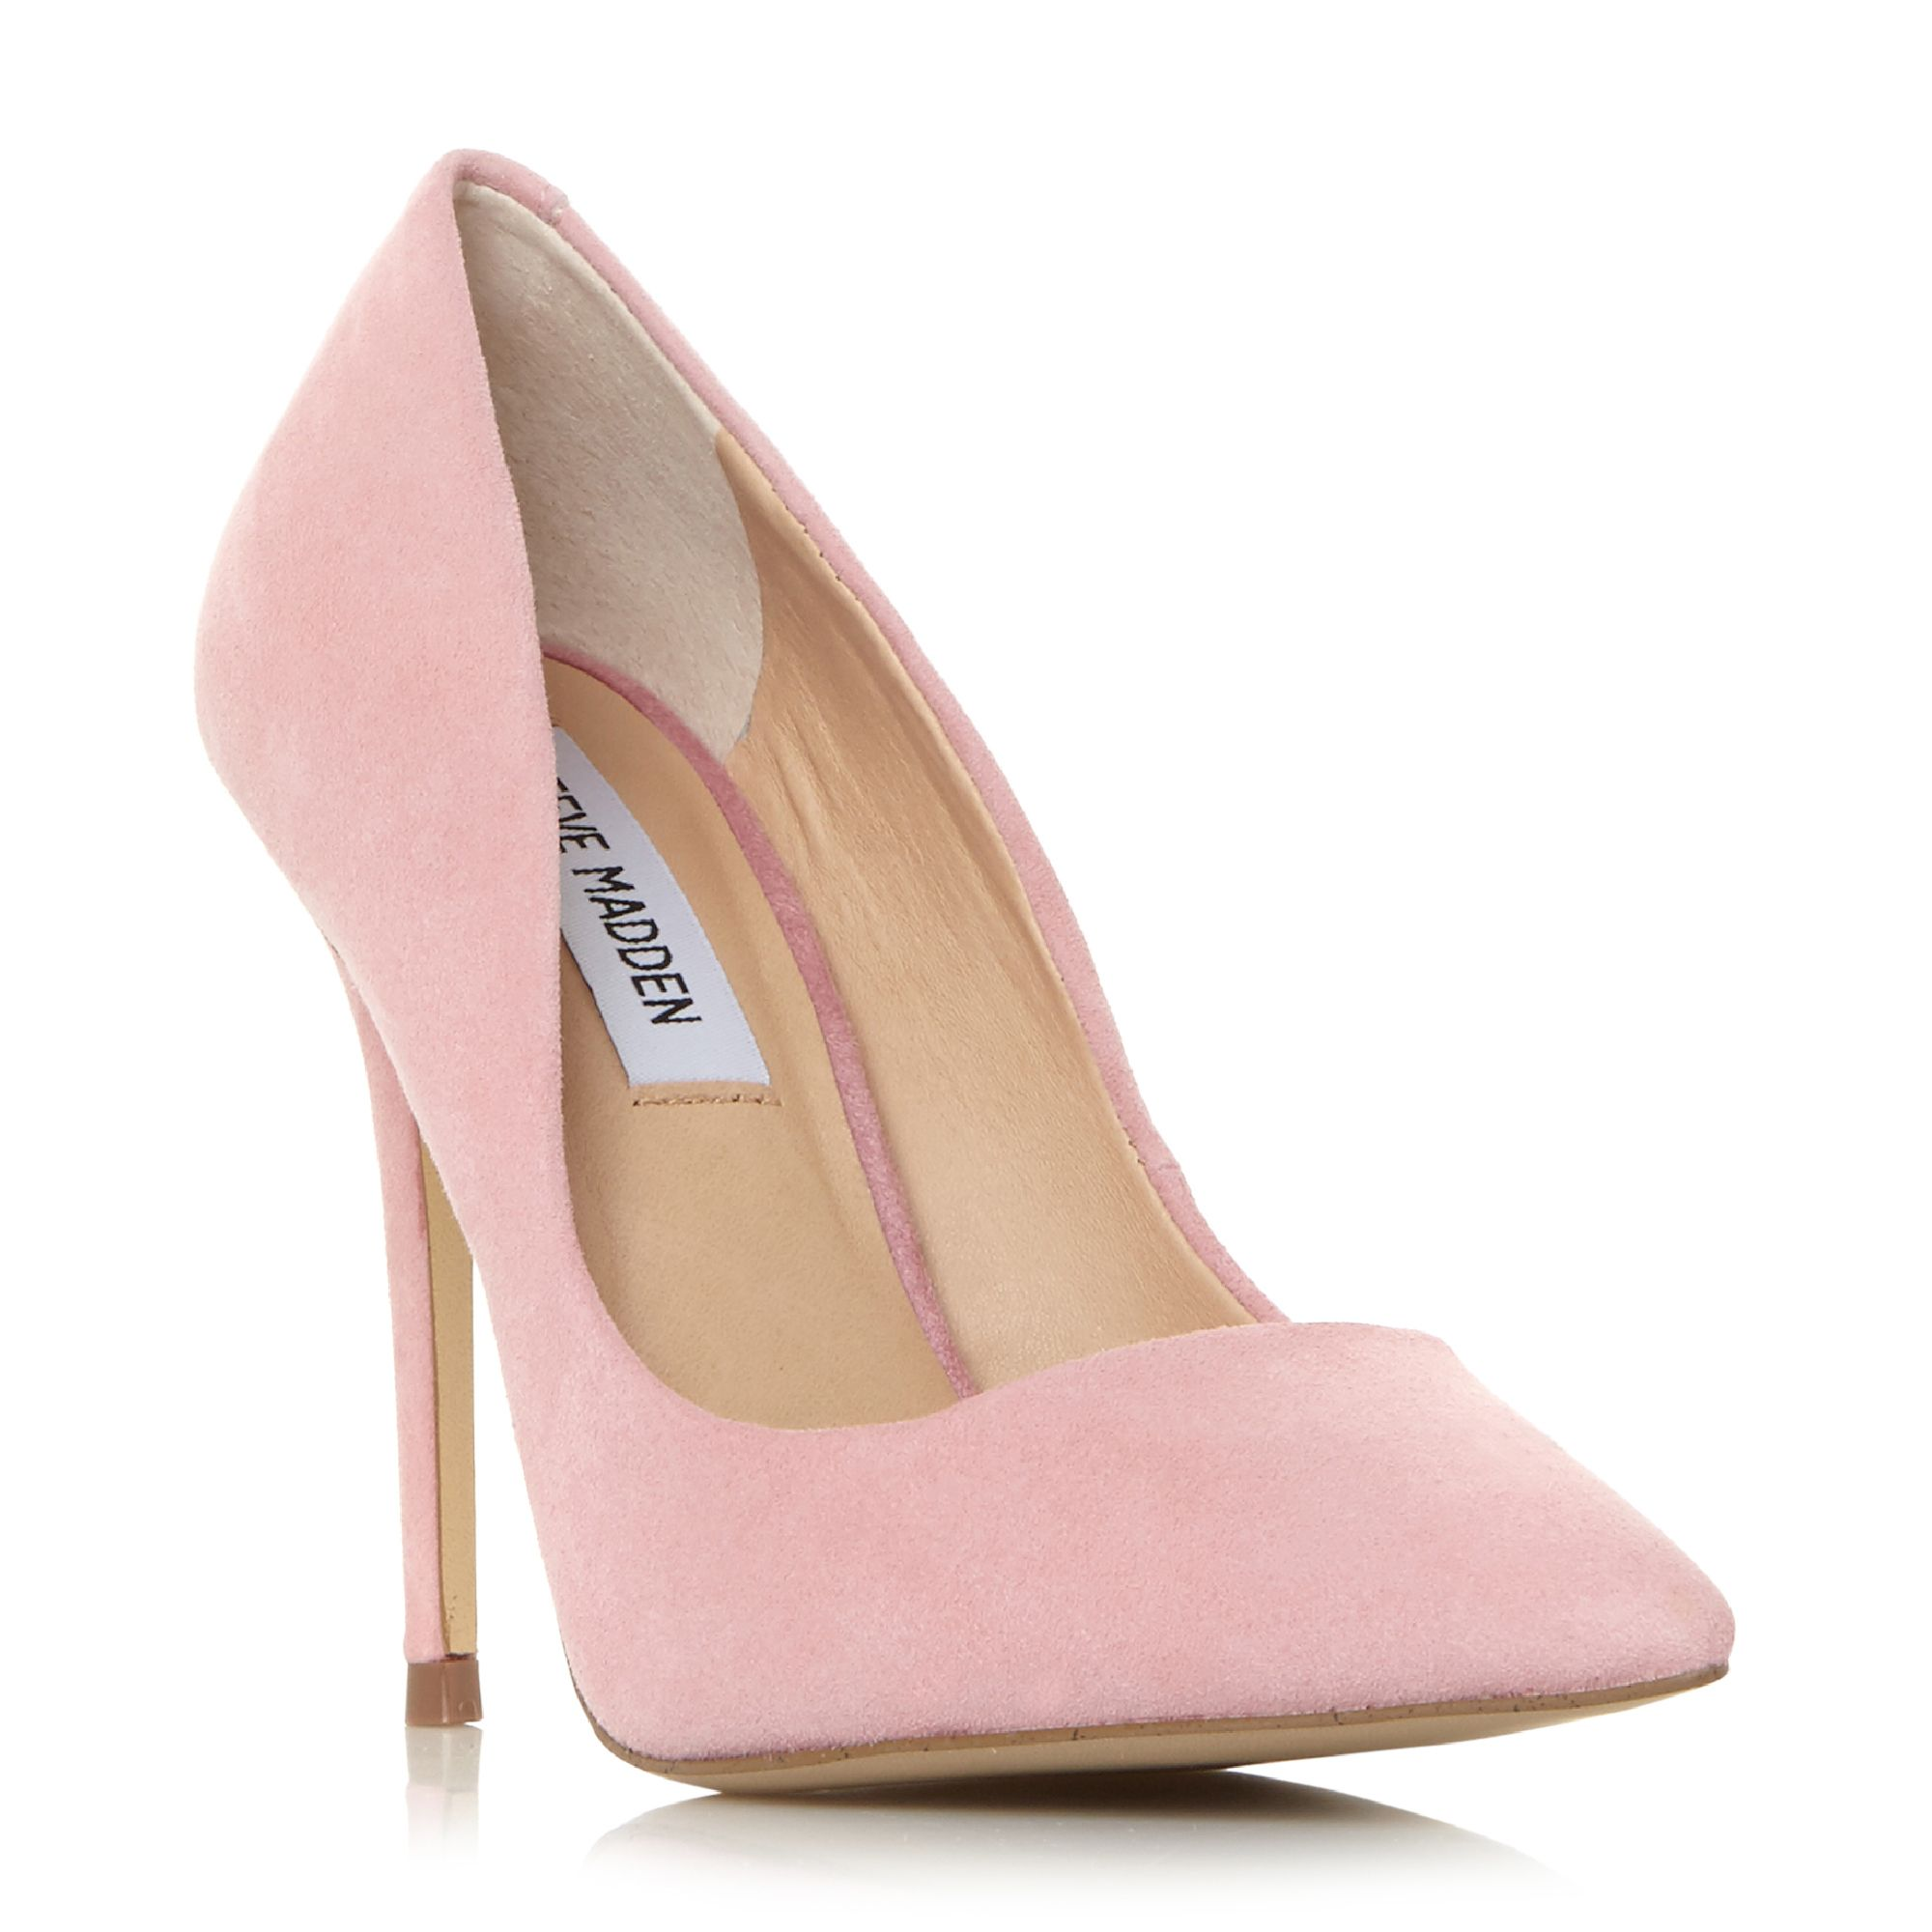 Steve Madden Daisiee Sm Point Toe Court Shoes, Pink